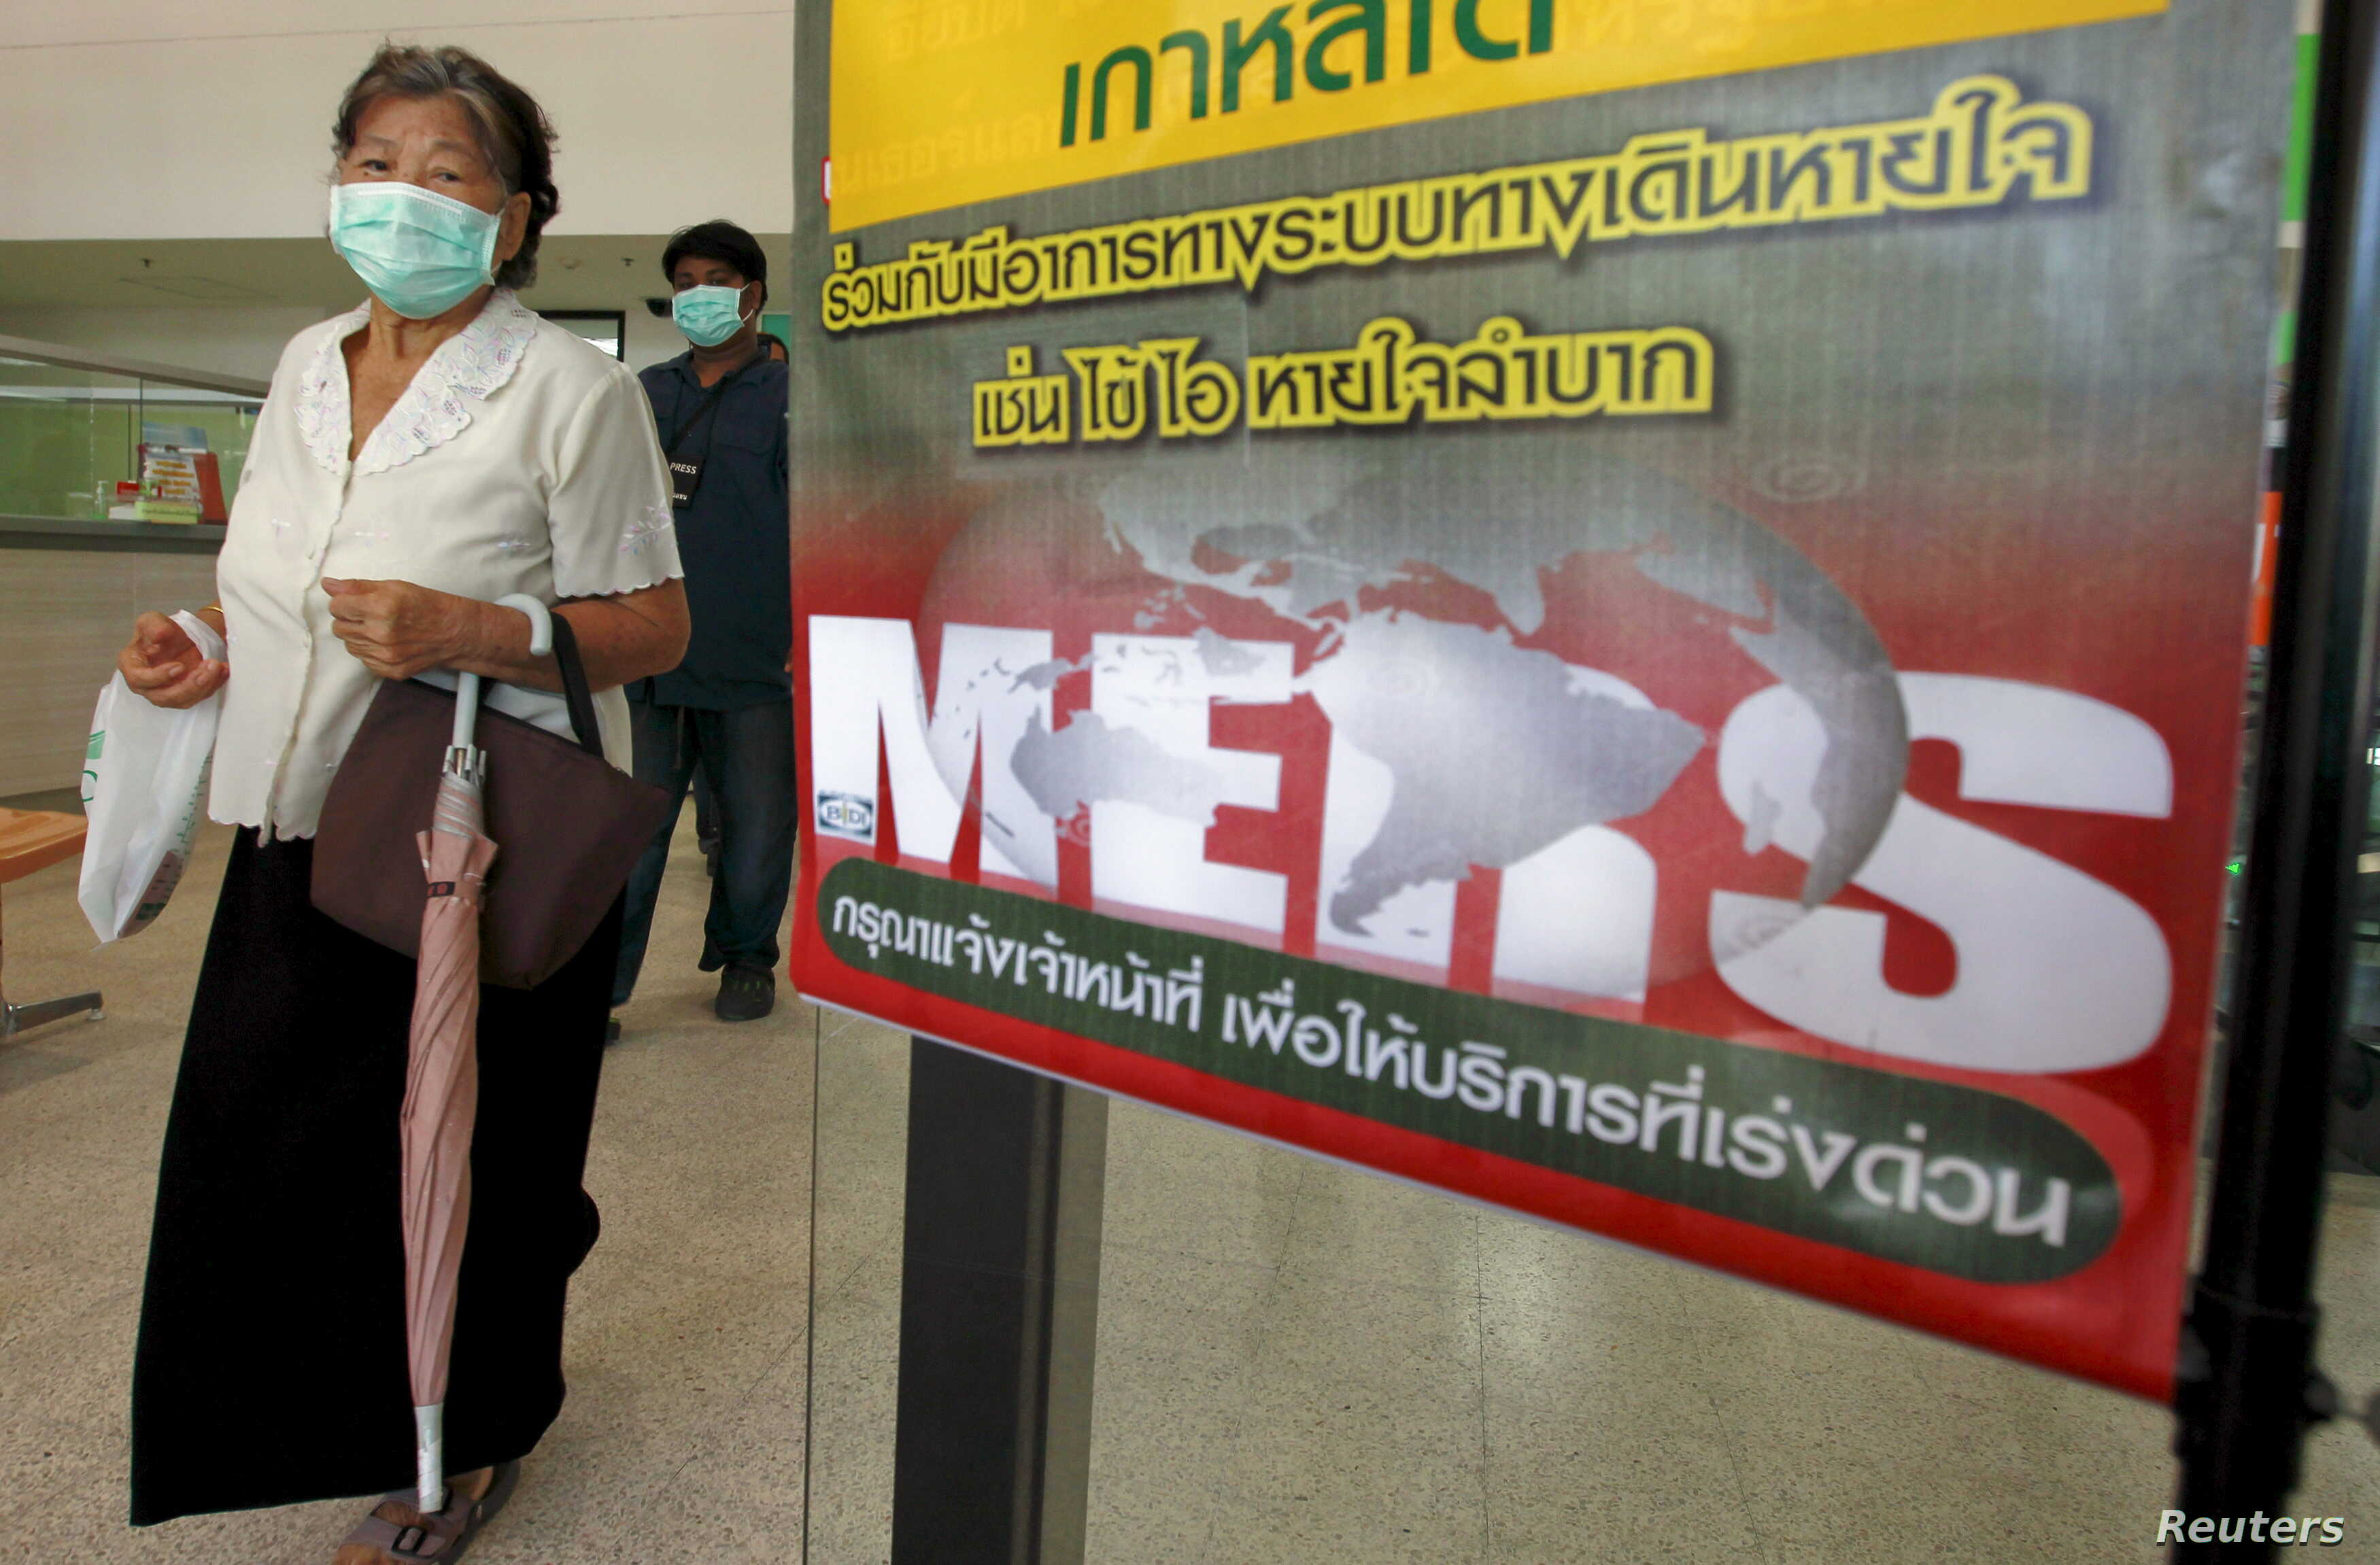 Family Members of 1st MERS Patient in Thailand Undergoing Tests